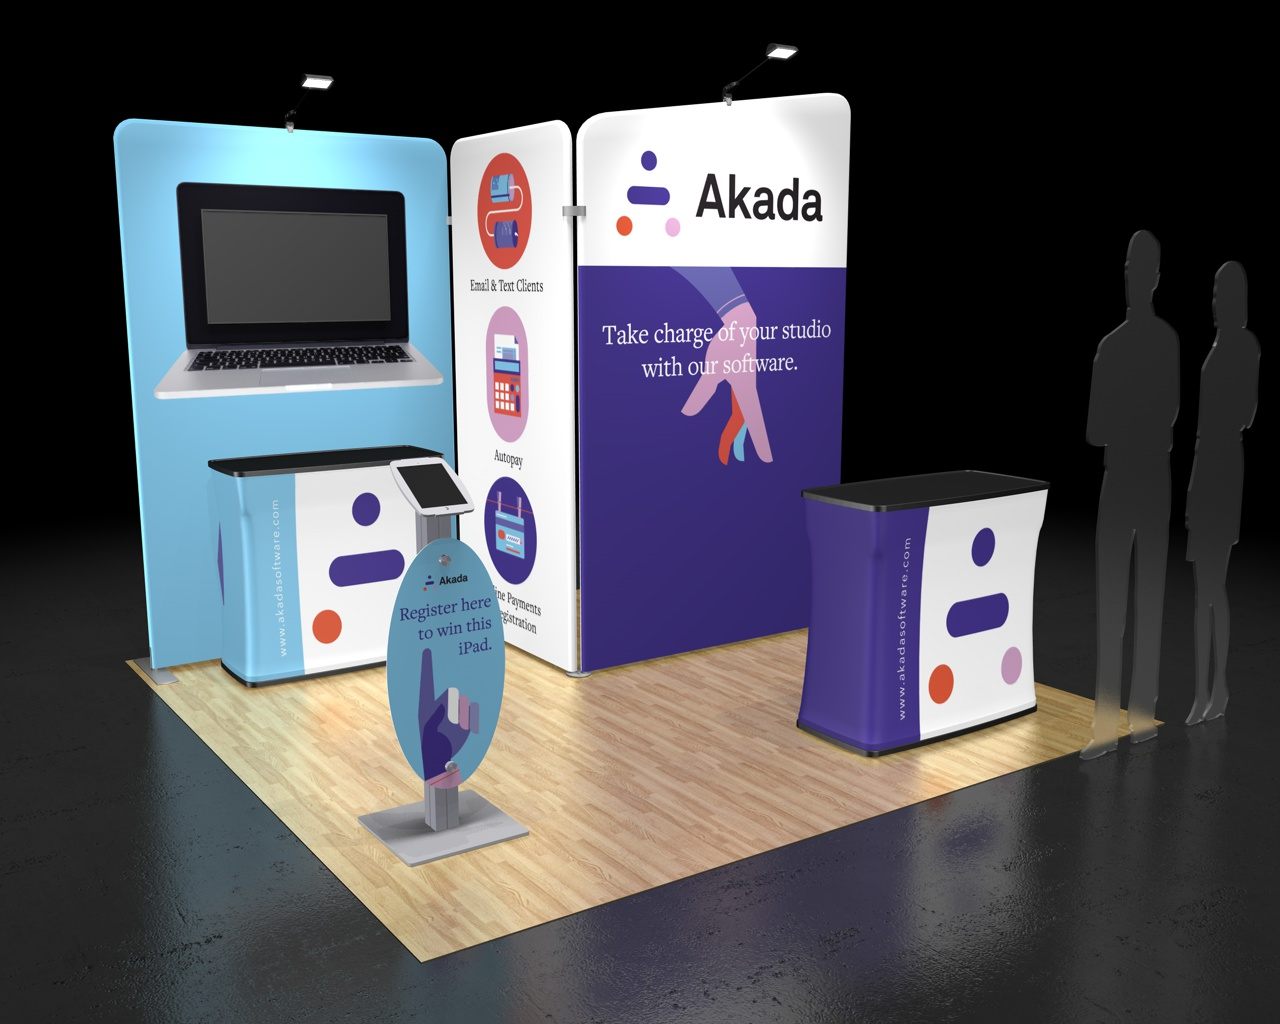 Akada, a software company, needed a booth design that expressed their unique brand identity, and chose the Waveline Media 10.07 tension fabric display.